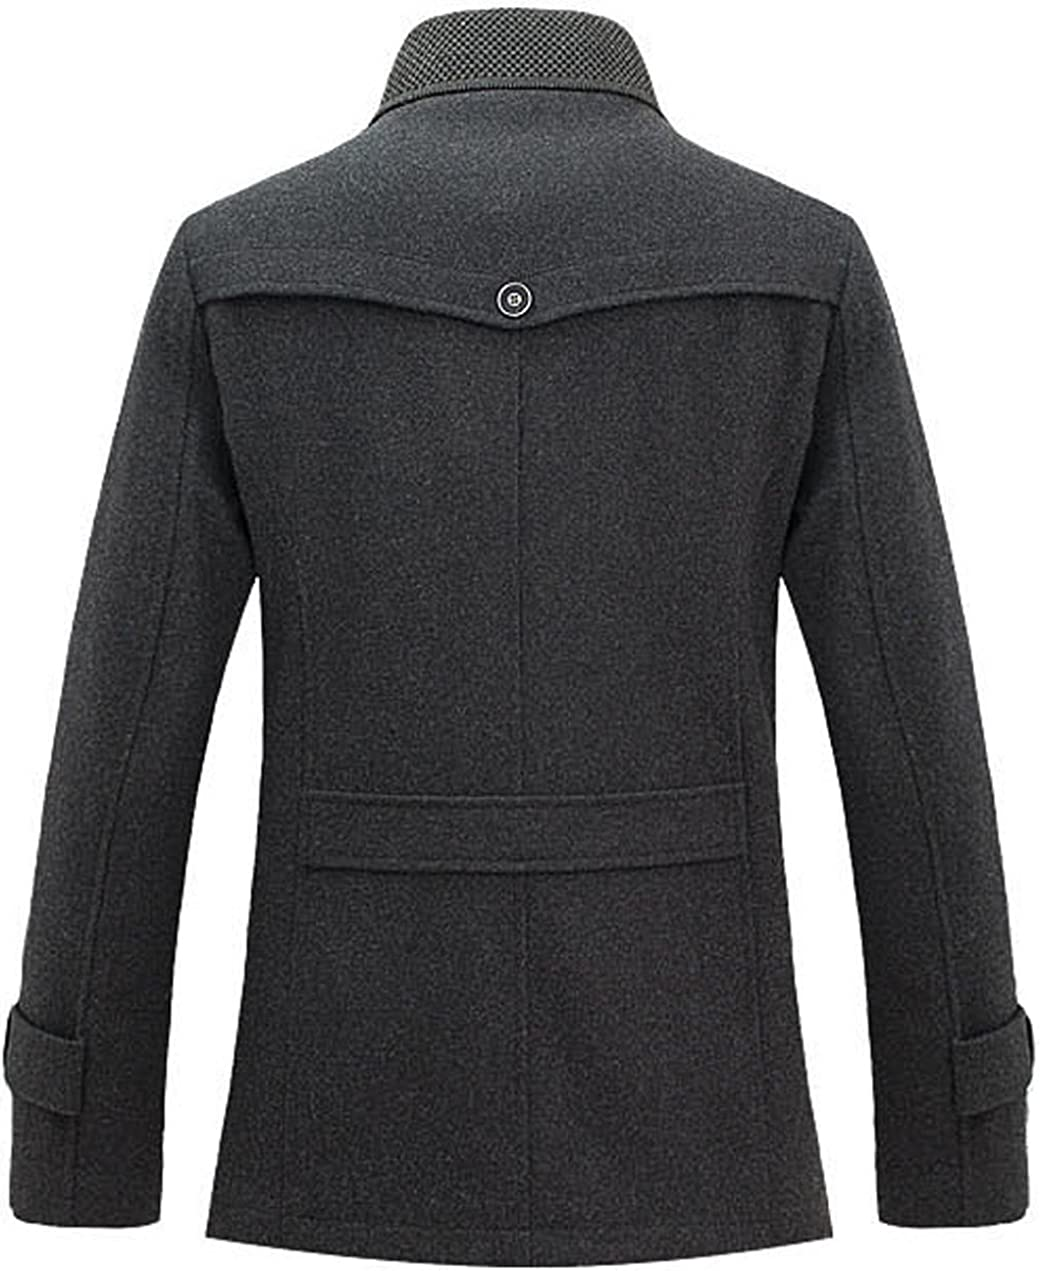 chouyatou Mens Fashion Single Breasted Wool-Blend Sherpa Lined Insulated Pea Coats